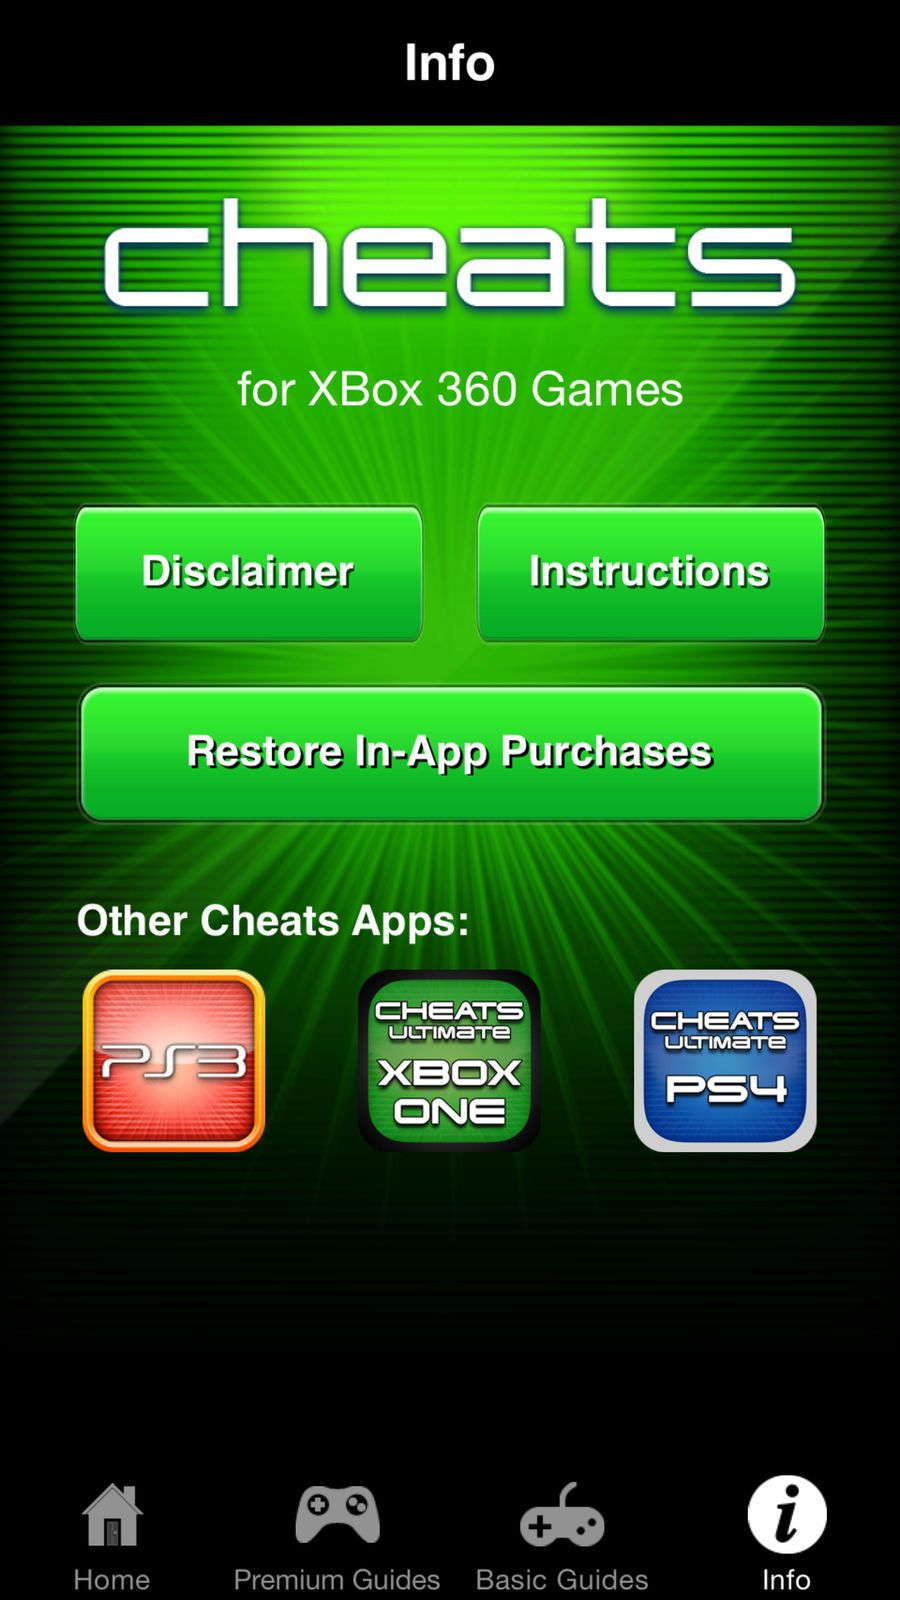 Cheats for XBox 360 Games Including Complete